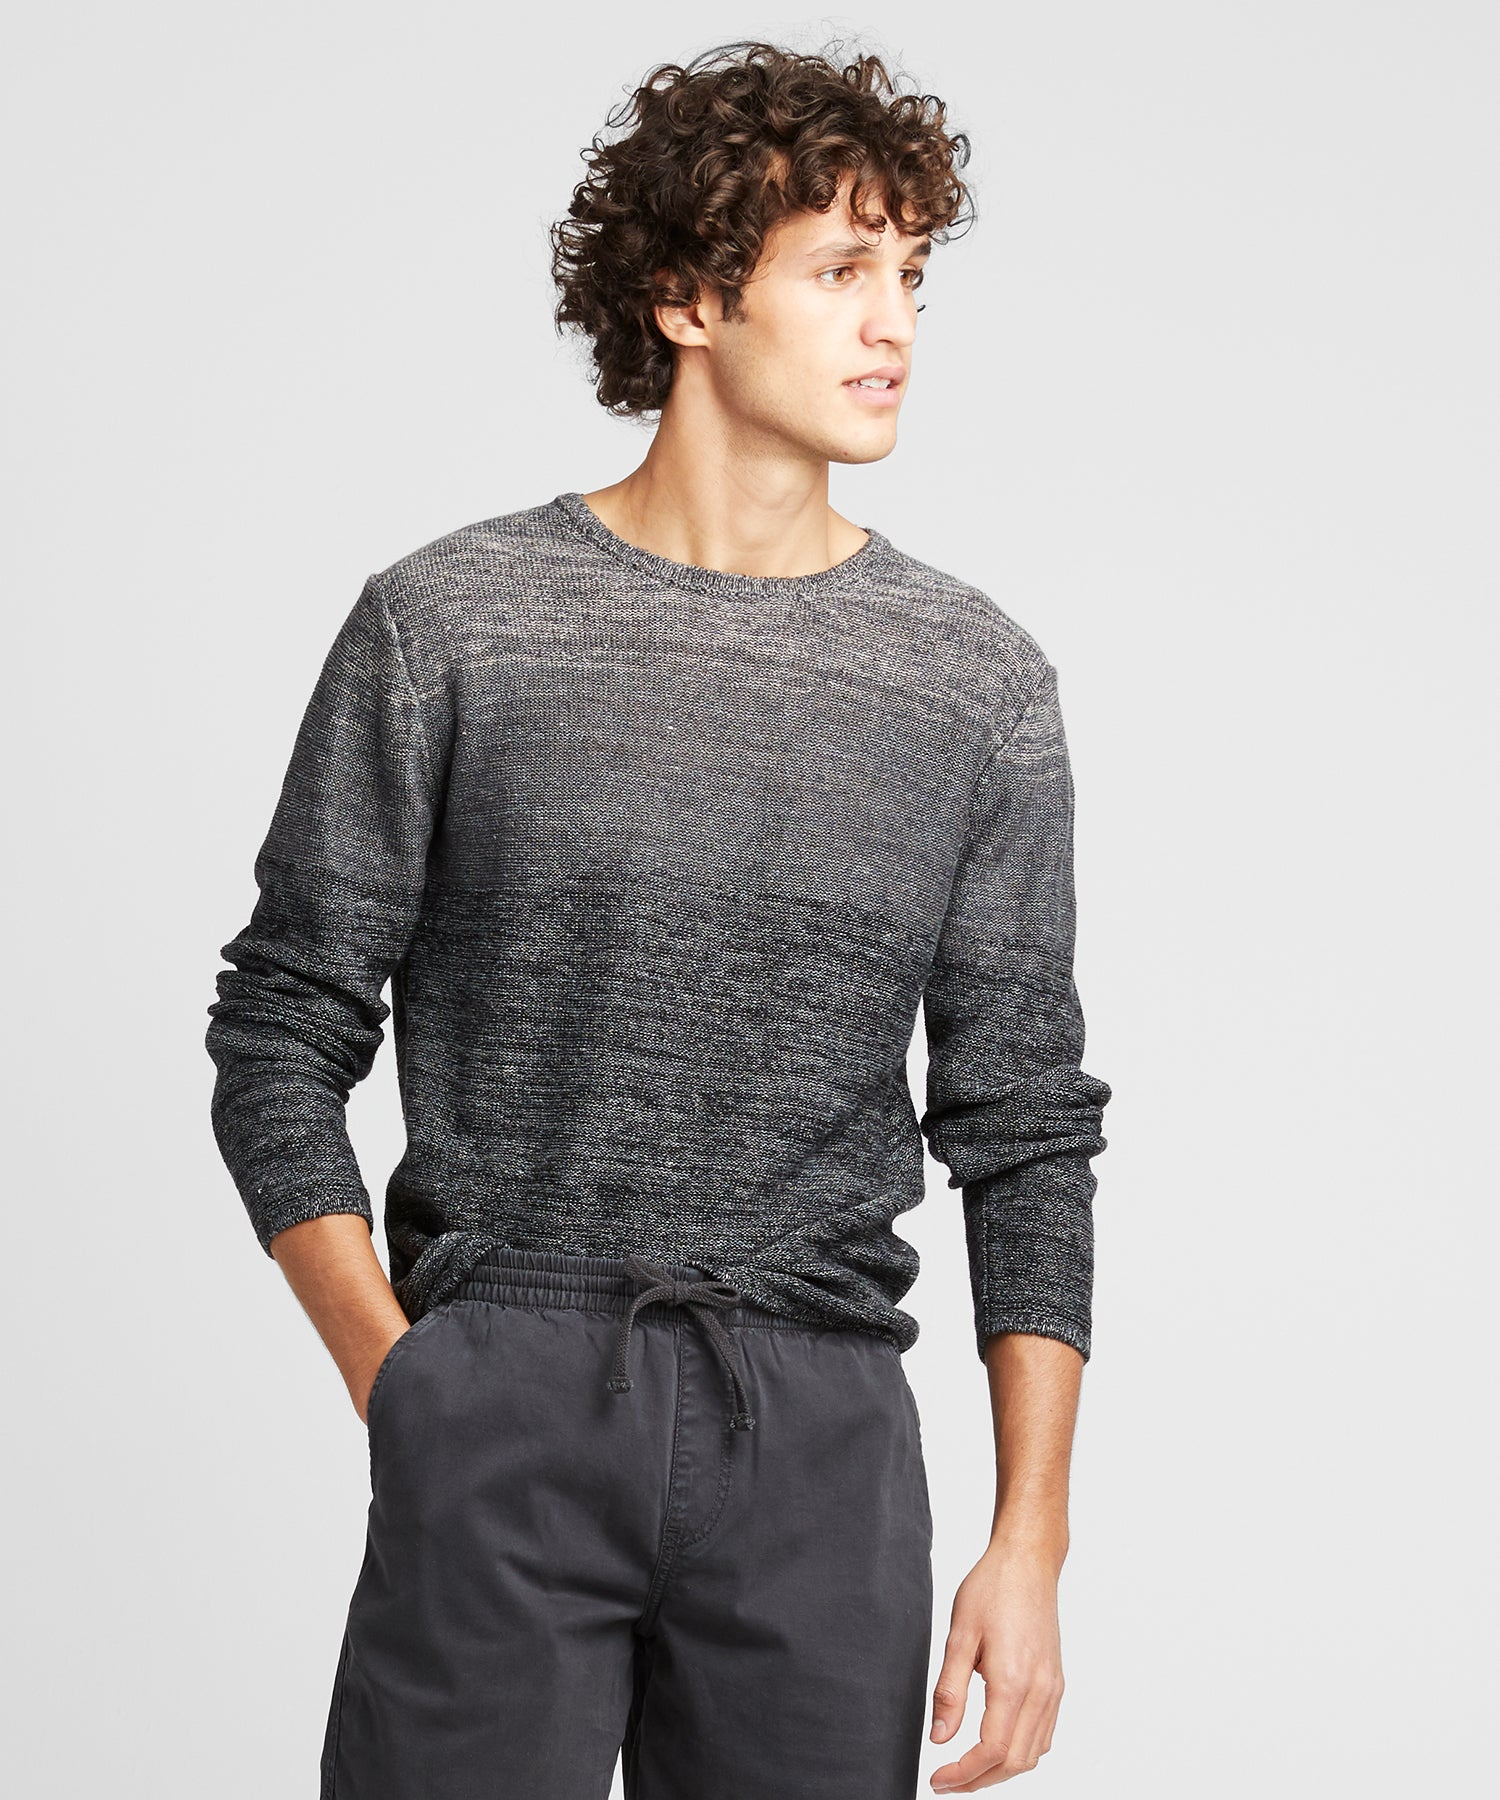 Inis Meain Linen Roll Neck in Ombre Dark Grey